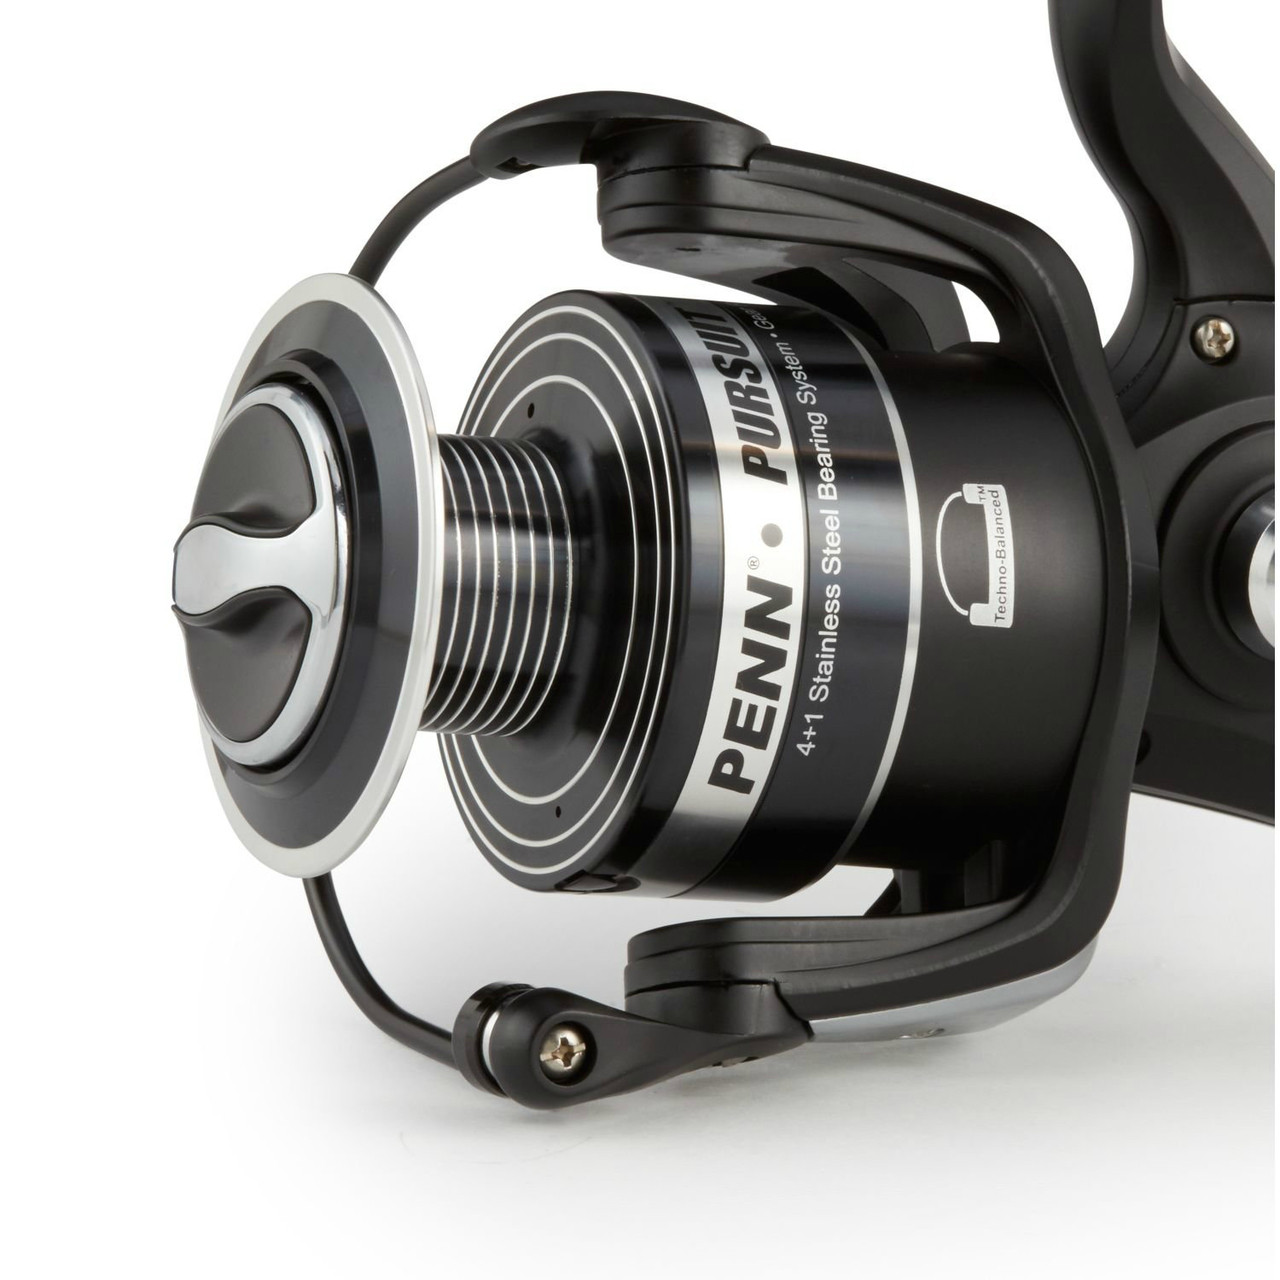 Fishing Reel 1292958 Penn Pursuit II 4000